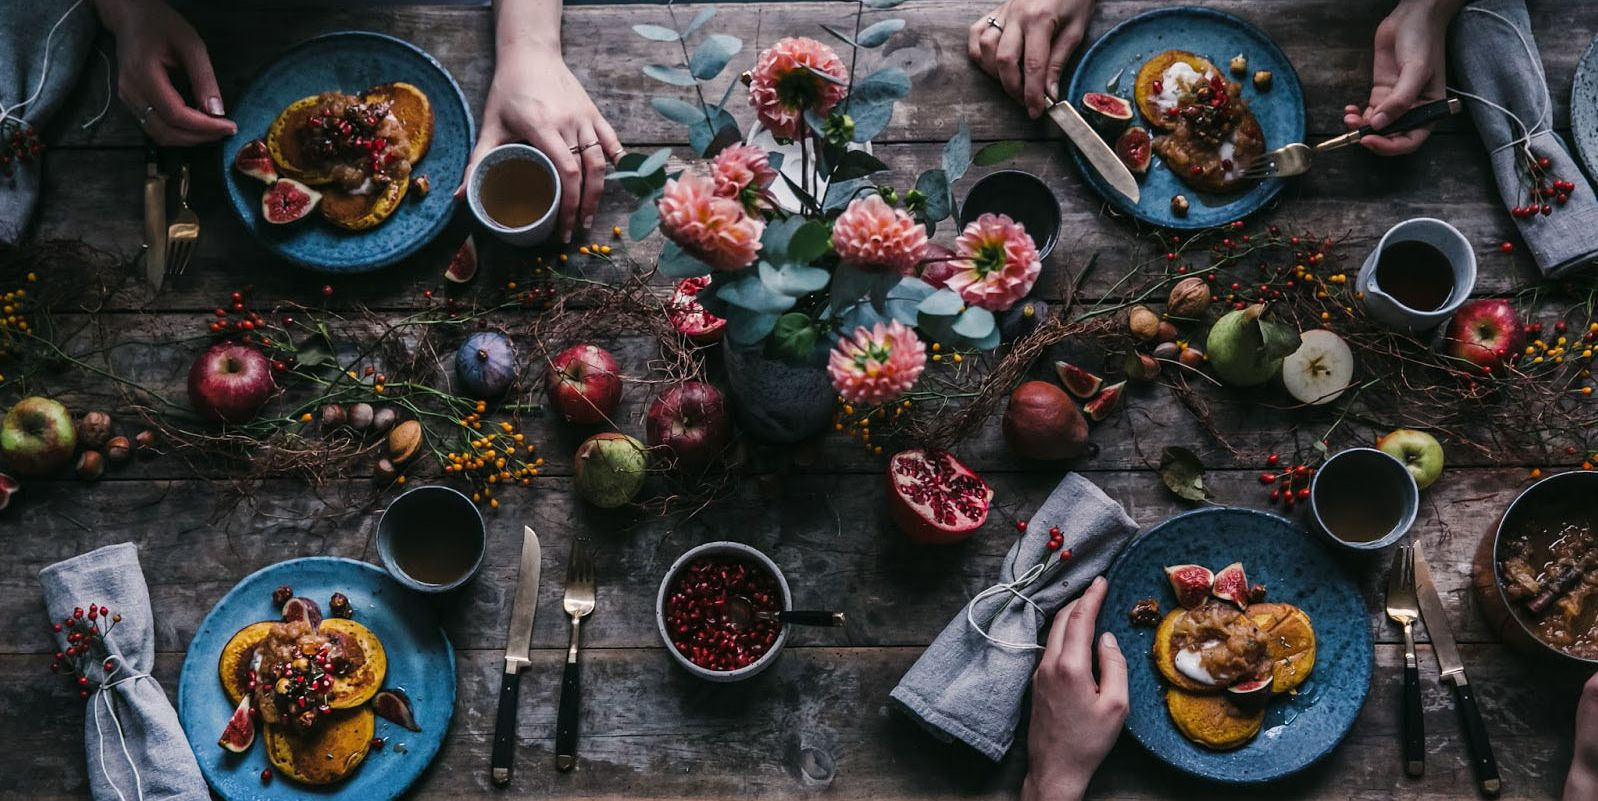 20+ of the Prettiest, Simplest Thanksgiving Table Ideas